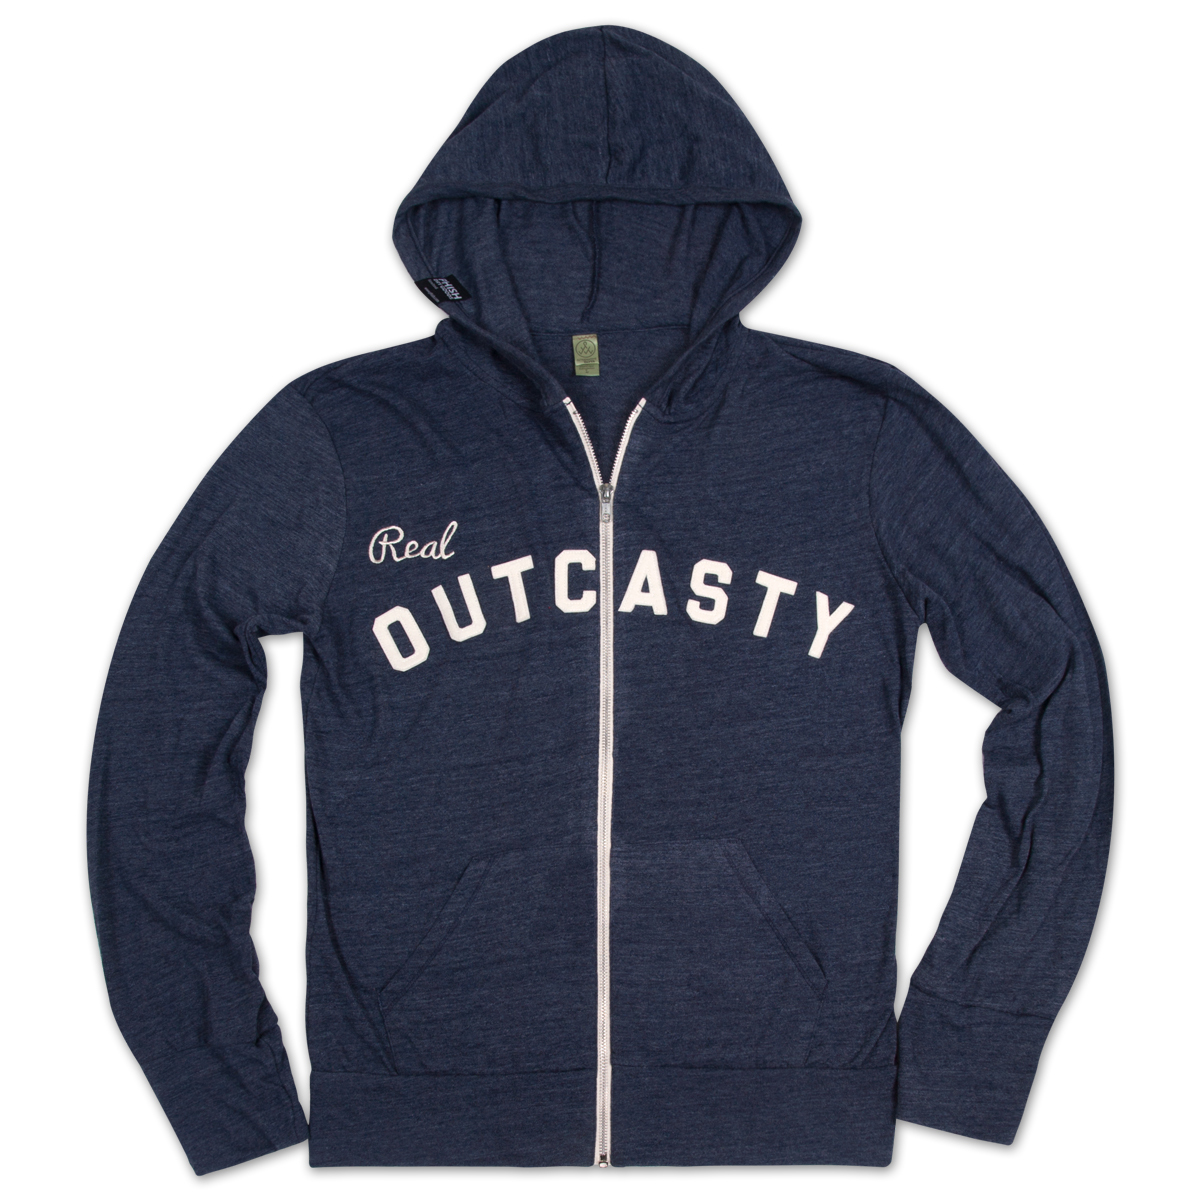 The Sloth Real Outcasty Lightweight Hoodie